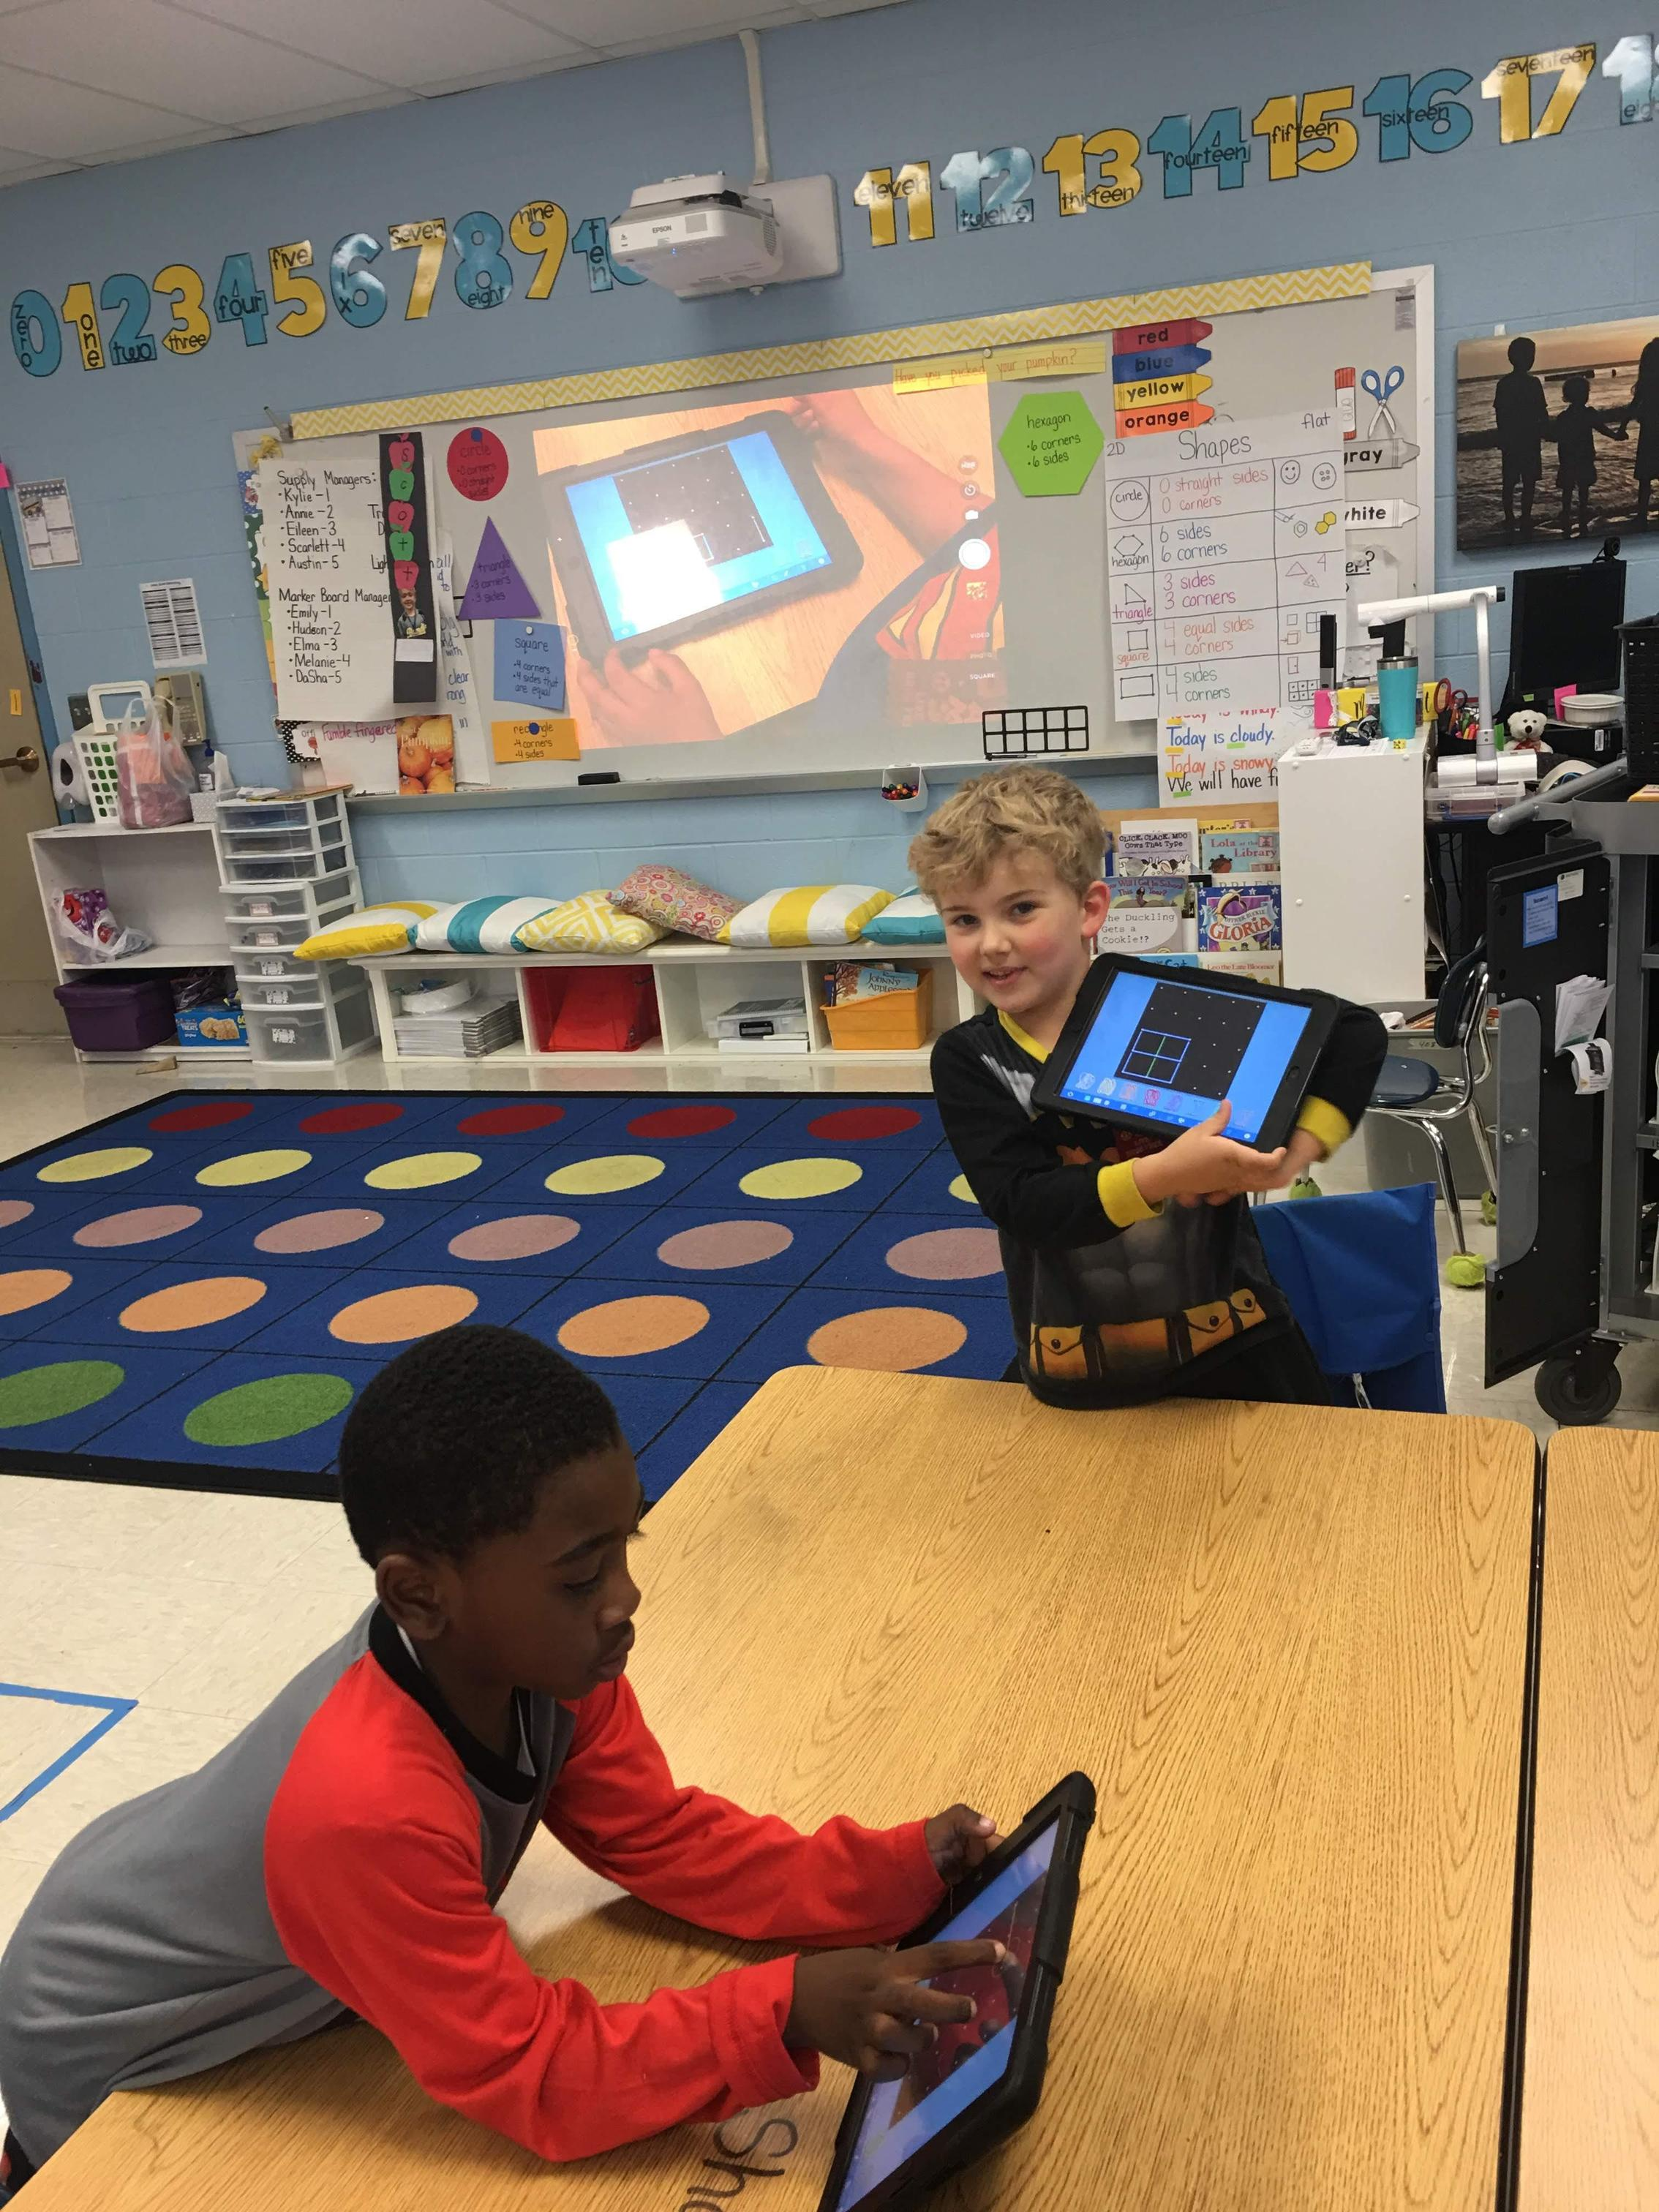 Geoboard app for K learning about shapes